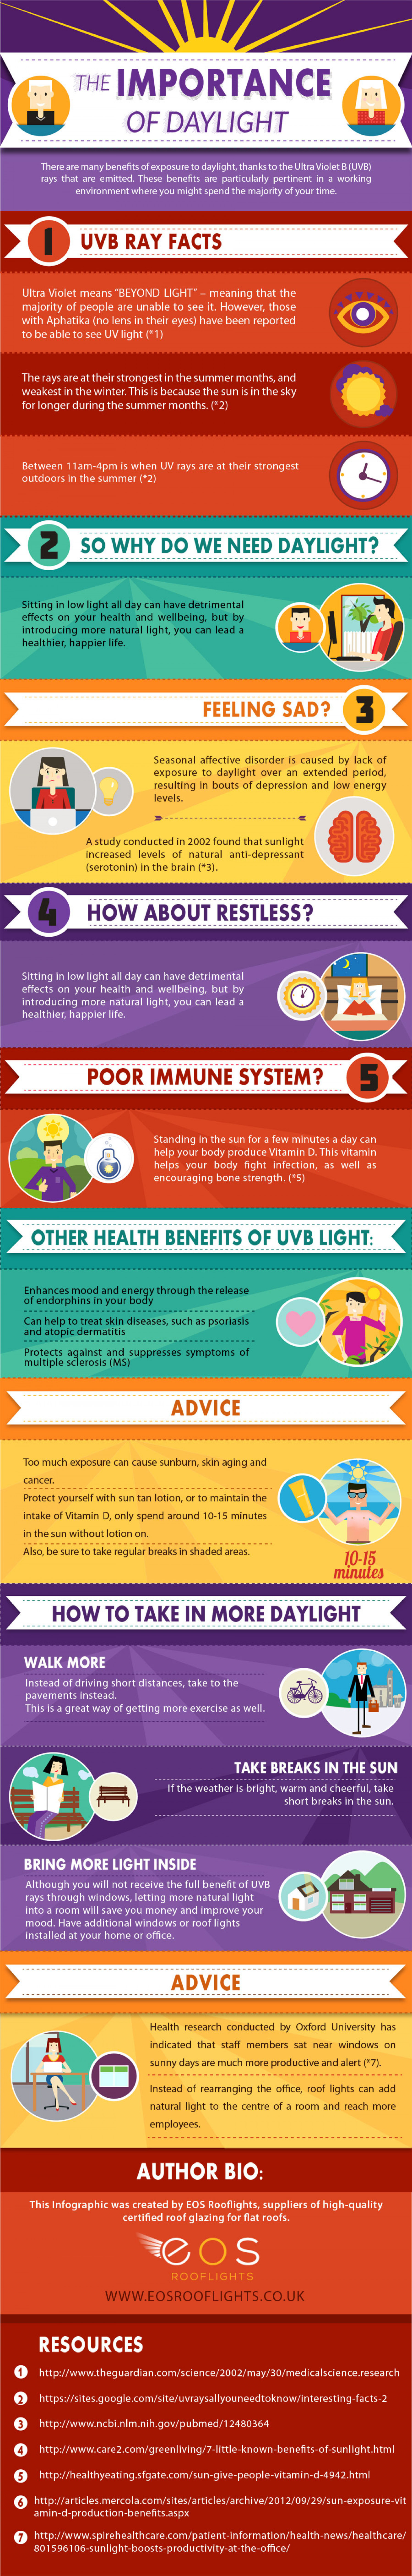 The Importance Of Daylight Infographic